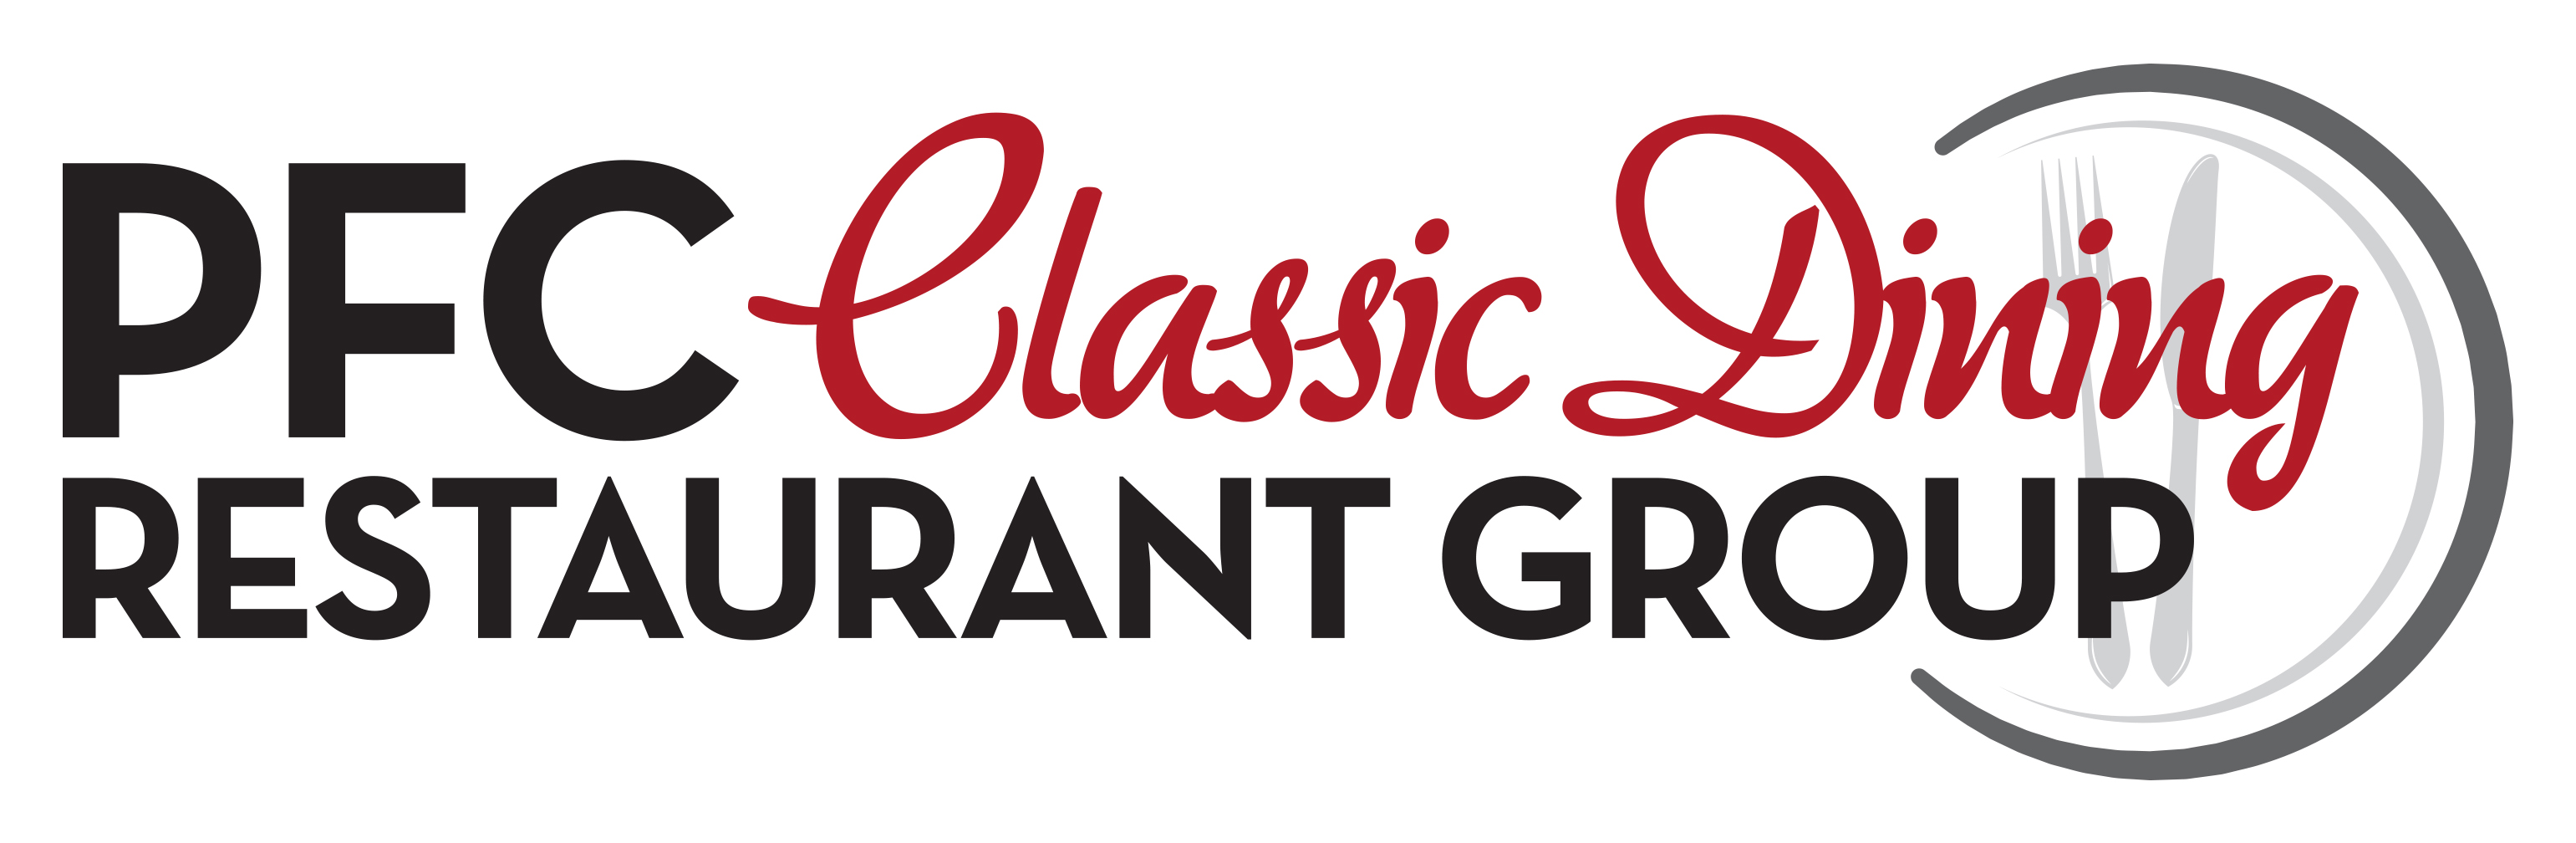 PFC Classic Dining Restaurant Group | Food & Restaurant Jobs